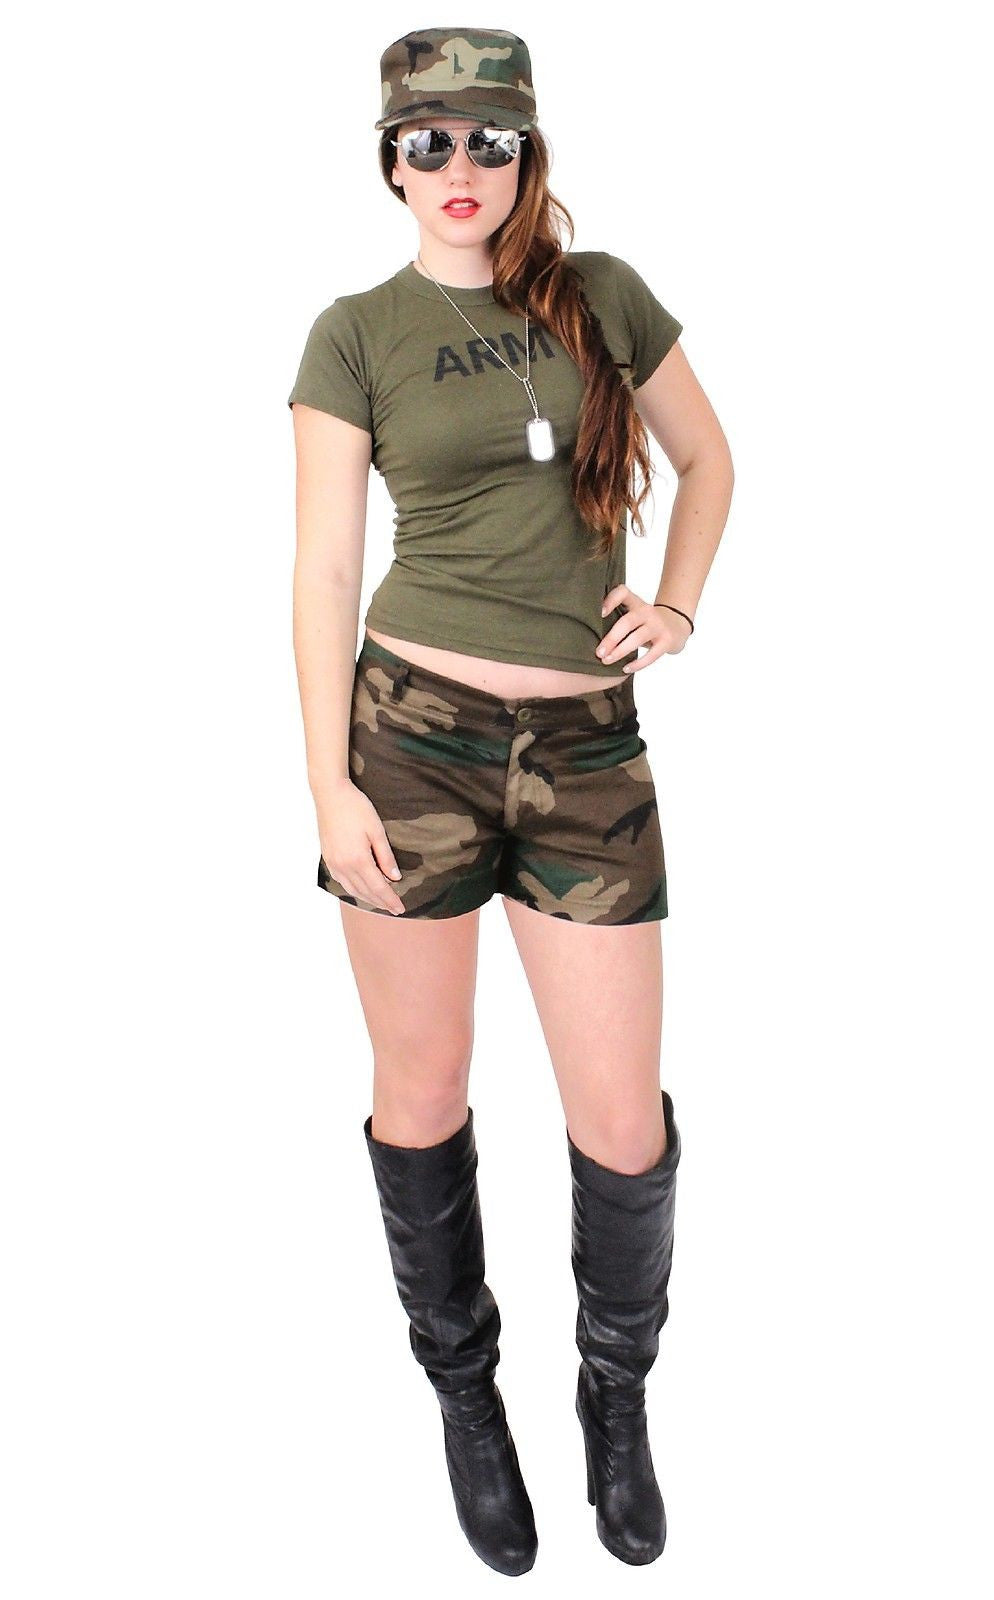 Army sexy costumes